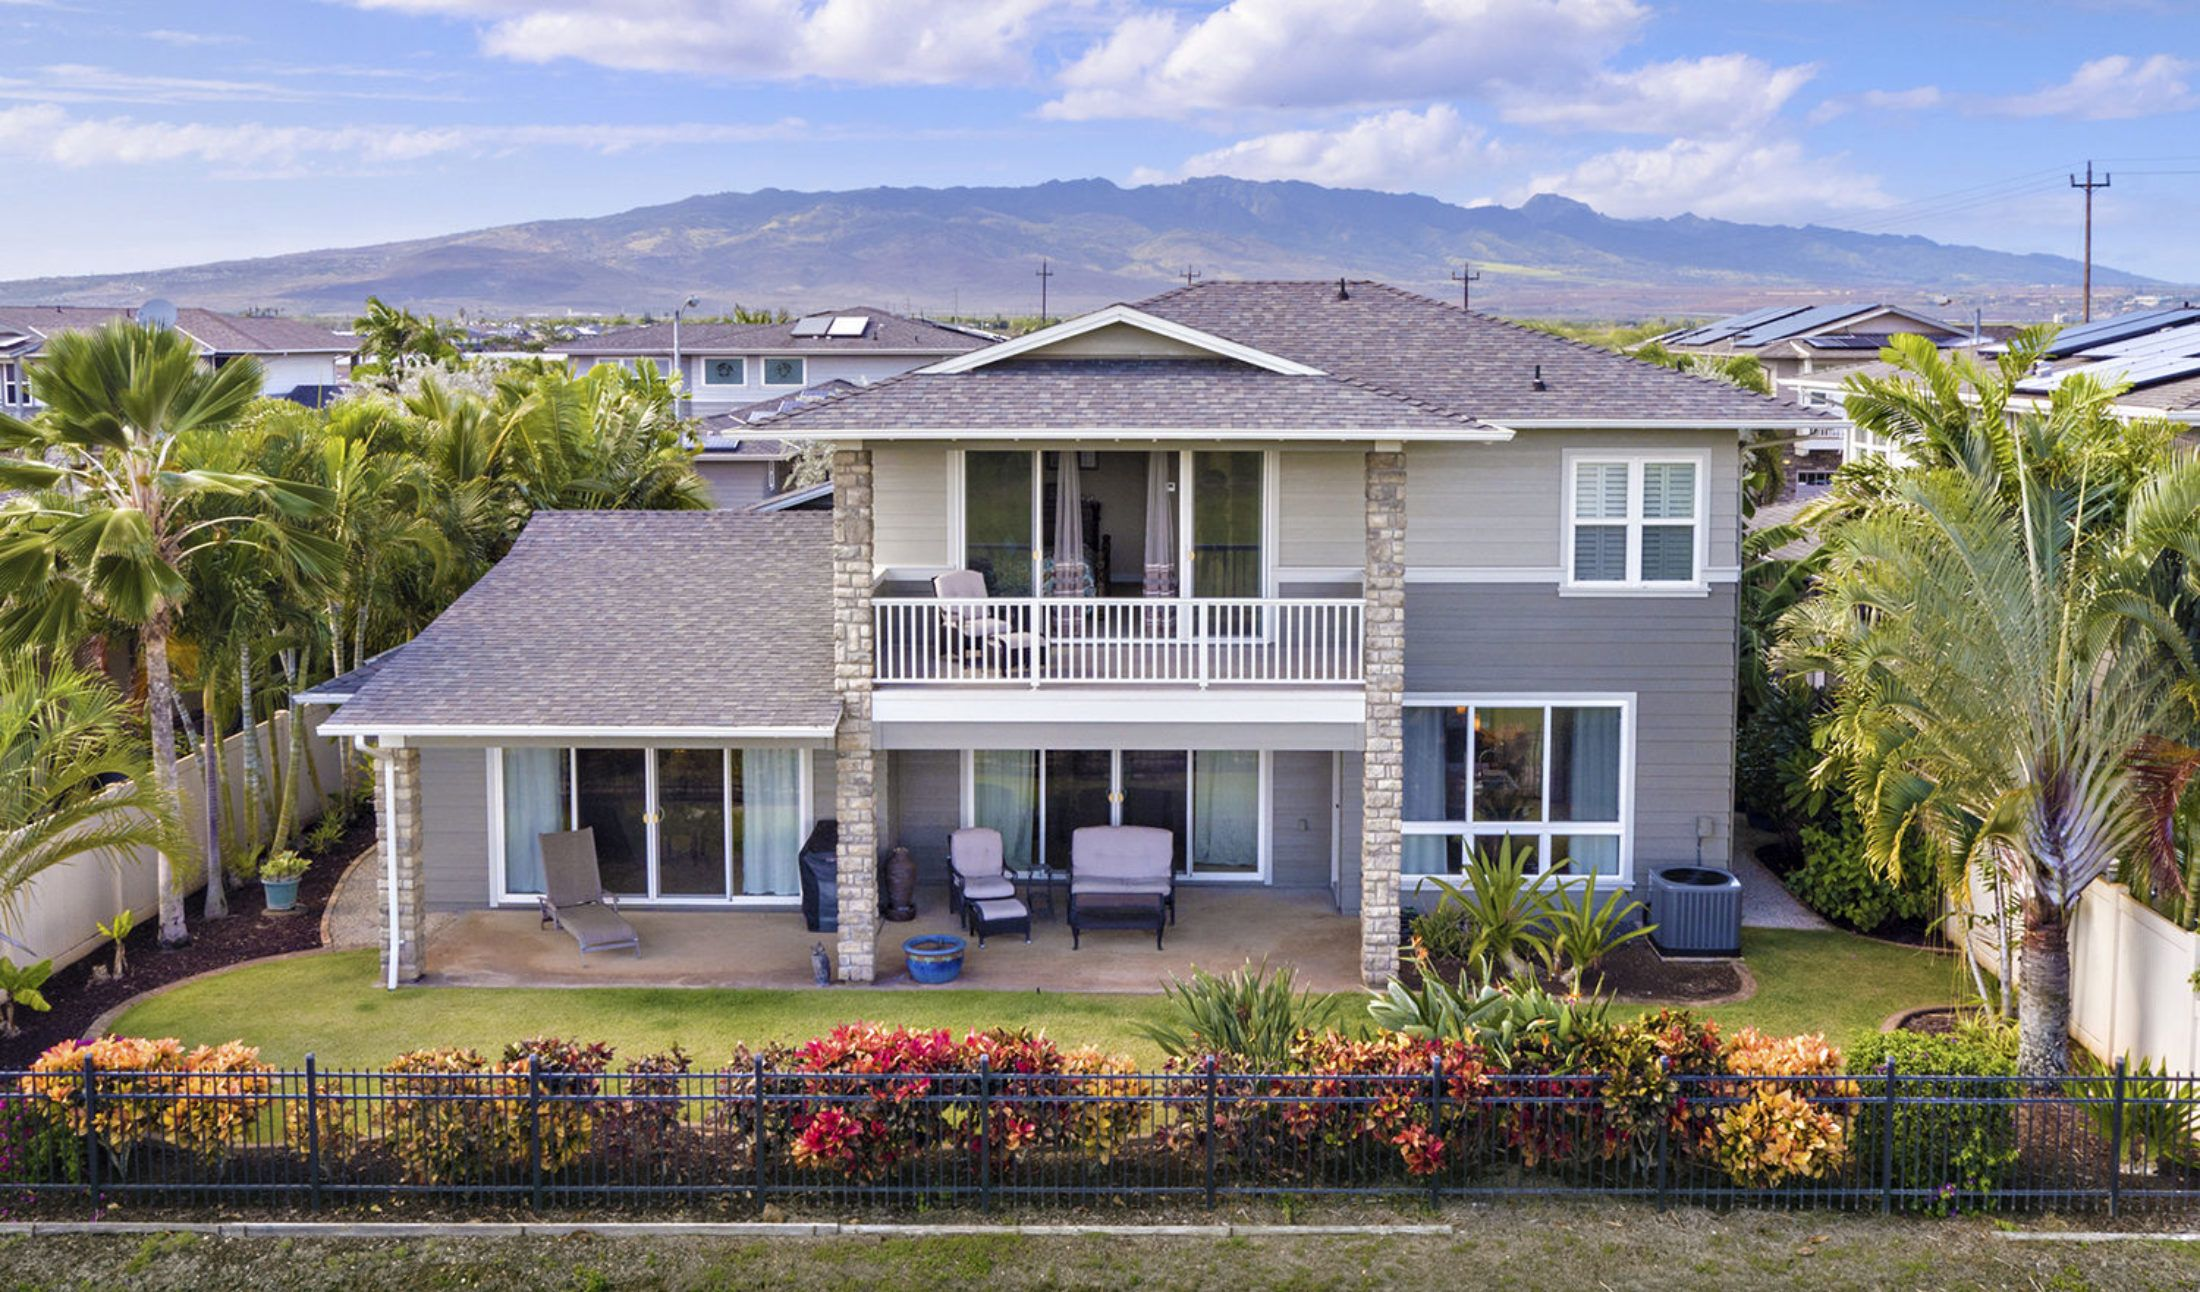 Upgraded View Centric Home In Ewa Beach